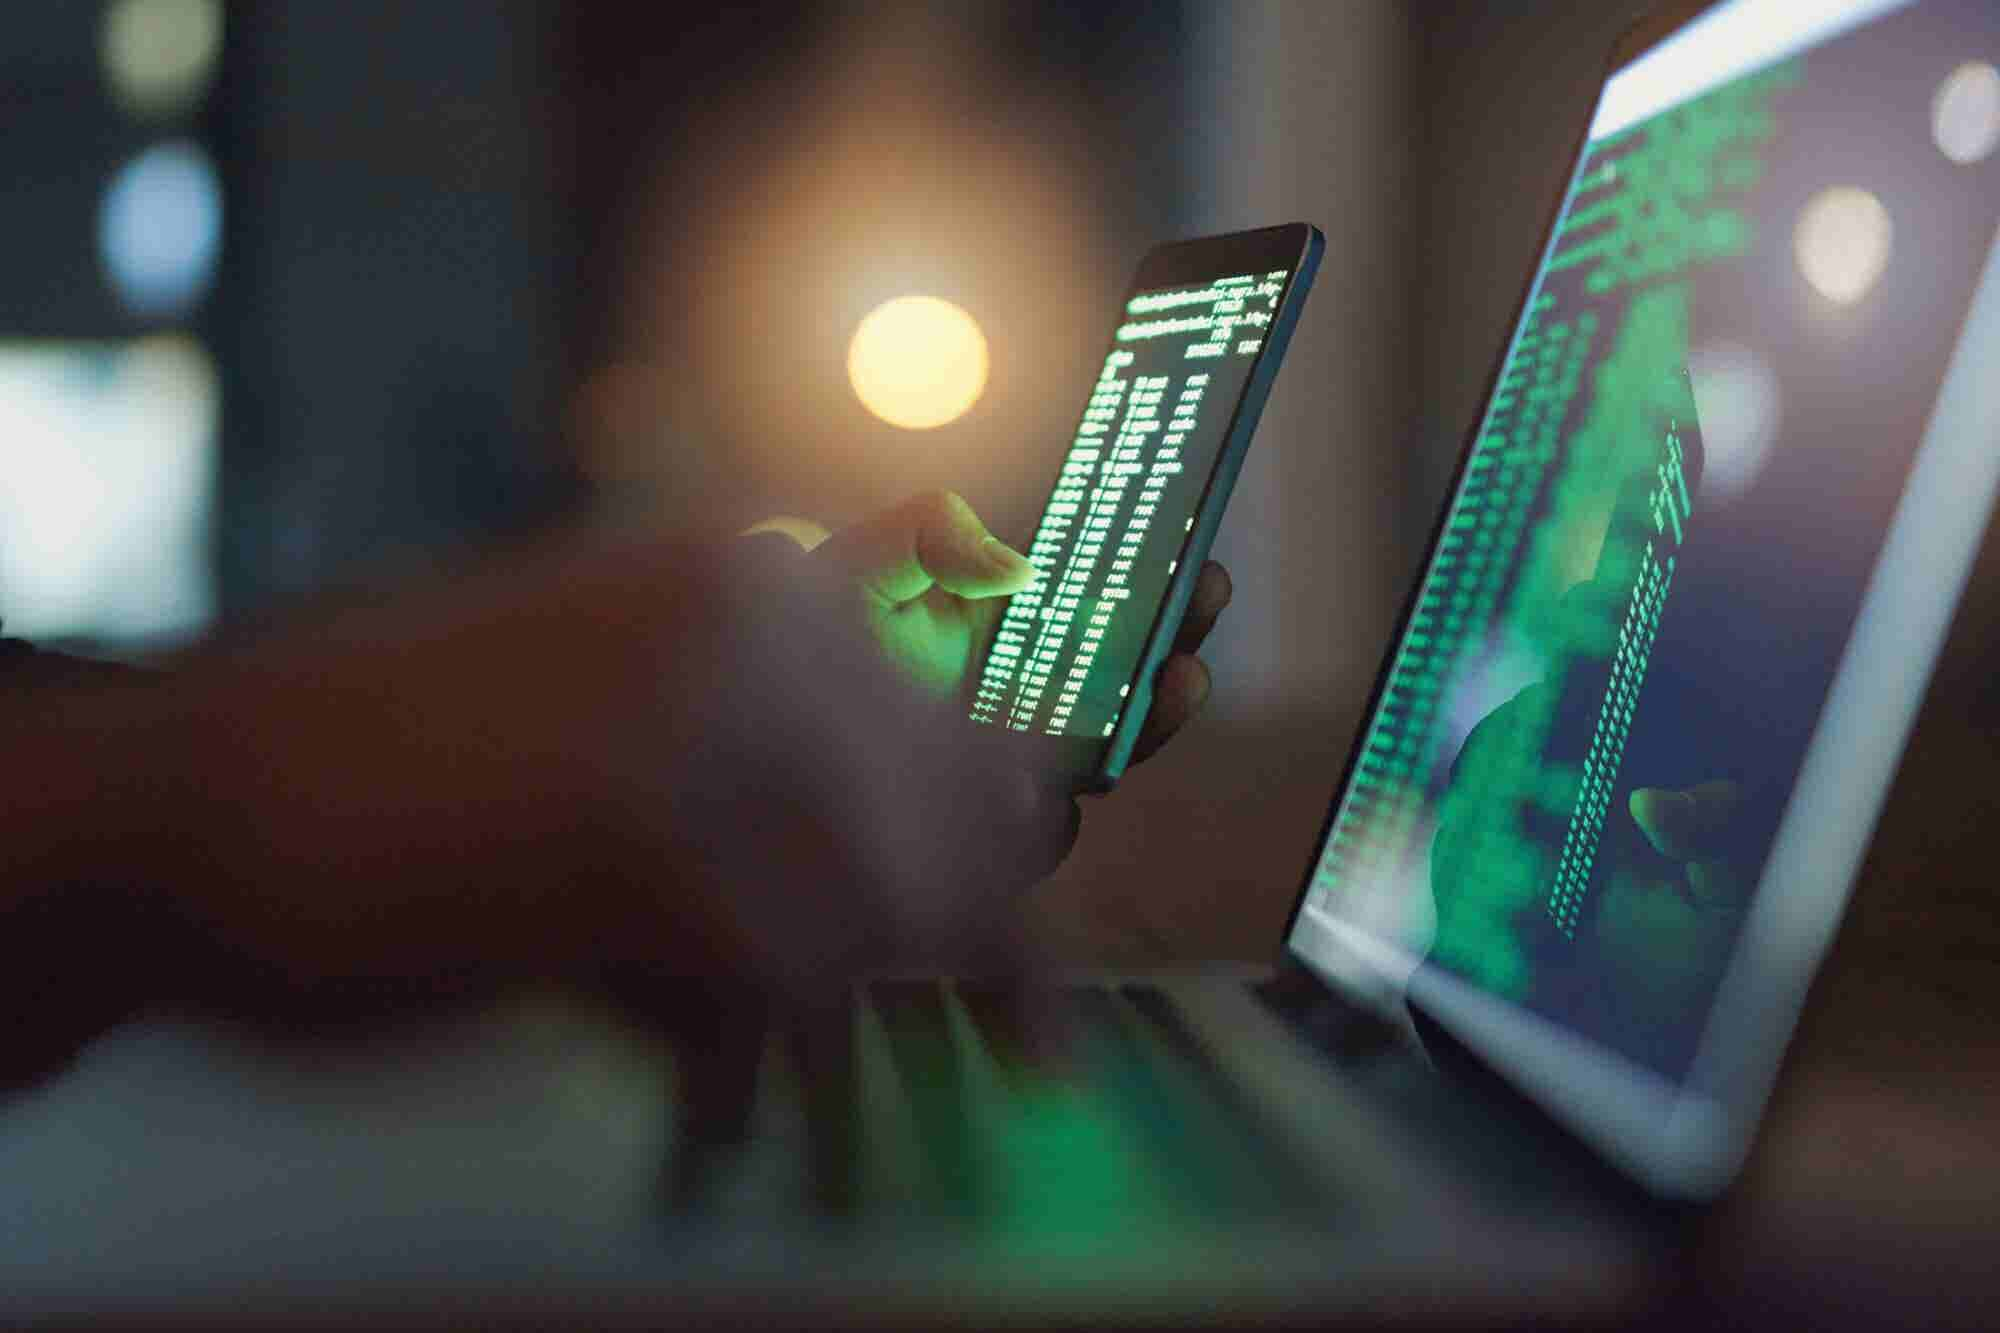 Malware Hits Everyone From Small Businesses to Big Government. What Are You Doing About It?